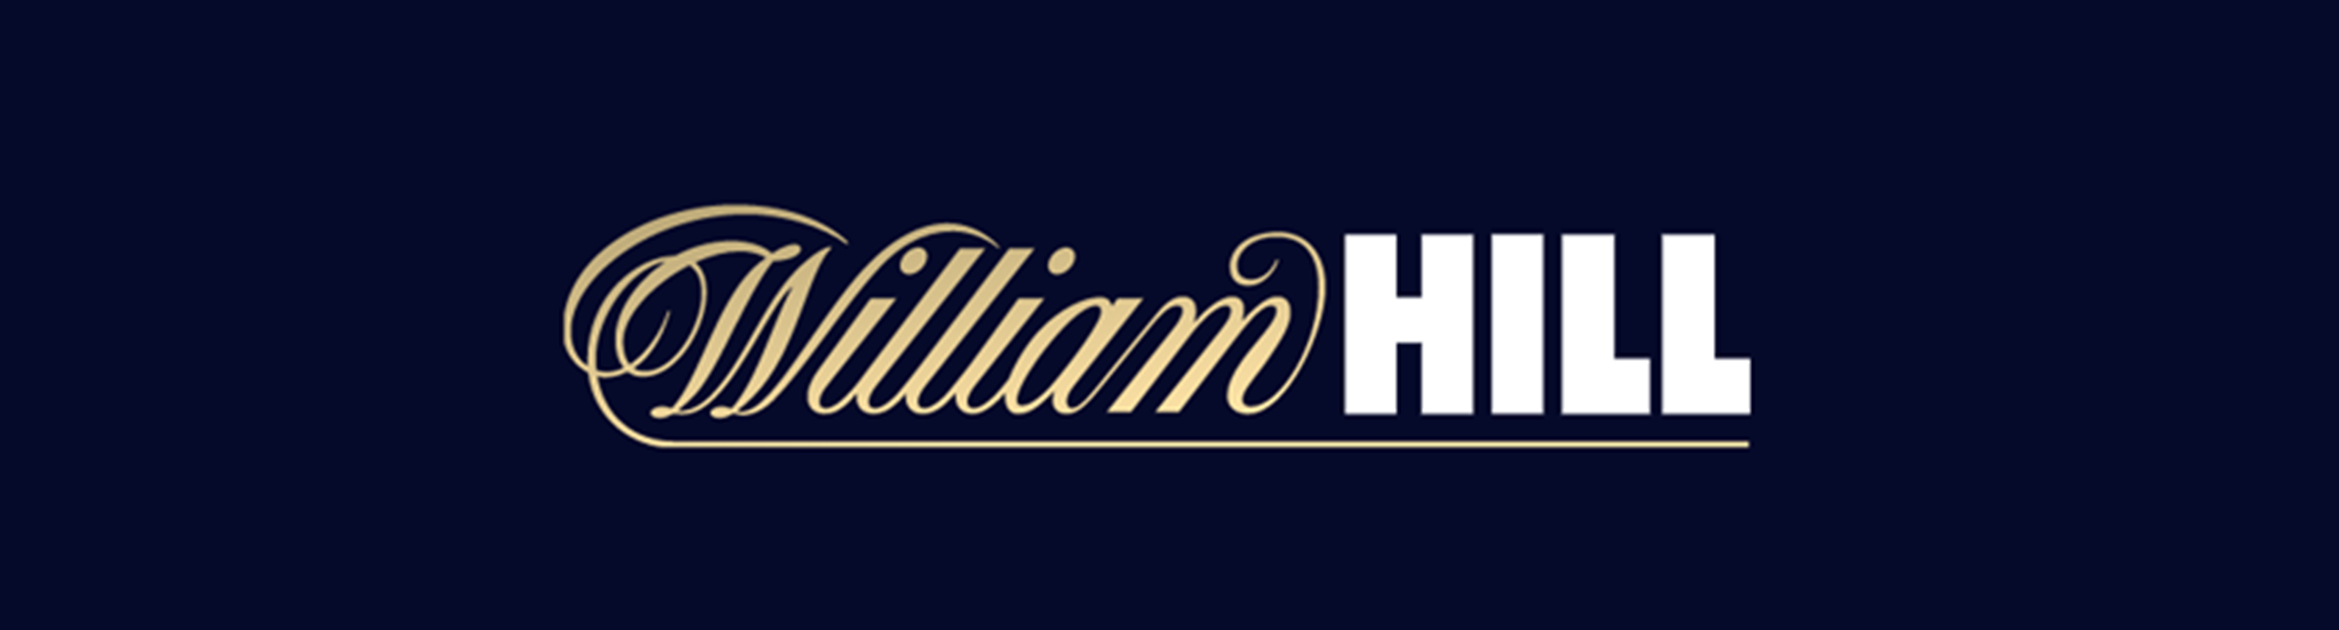 william hikk